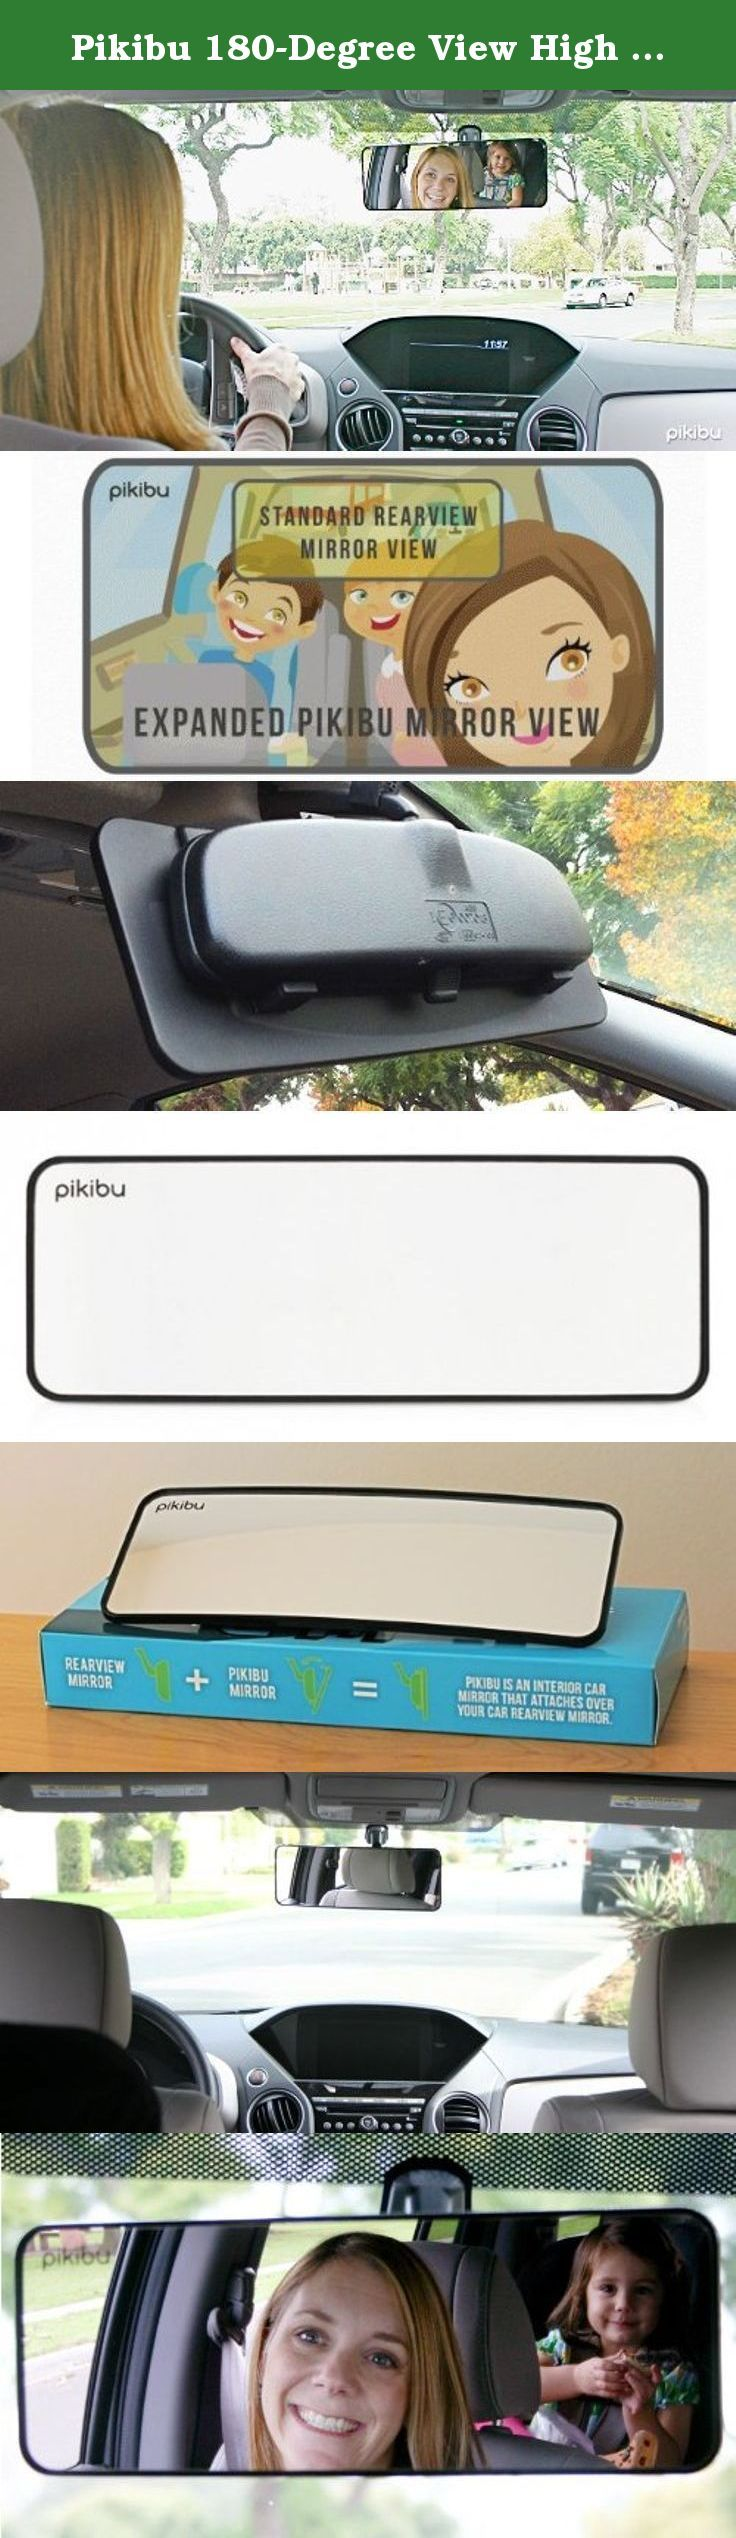 Pikibu 180-Degree View High Definition Clarity Baby Car Mirror, Black. Pikibu is an interior car mirror that attaches over your car rearview mirror. People around the world are stuck in the past, held back by their car rear view mirror. Today, when friends and family are connected by smart phones and fast internet connections, we think it andapos; s silly that most people still look through their old flat rearview mirrors. Our mirror was specifically designed with families in mind. The...